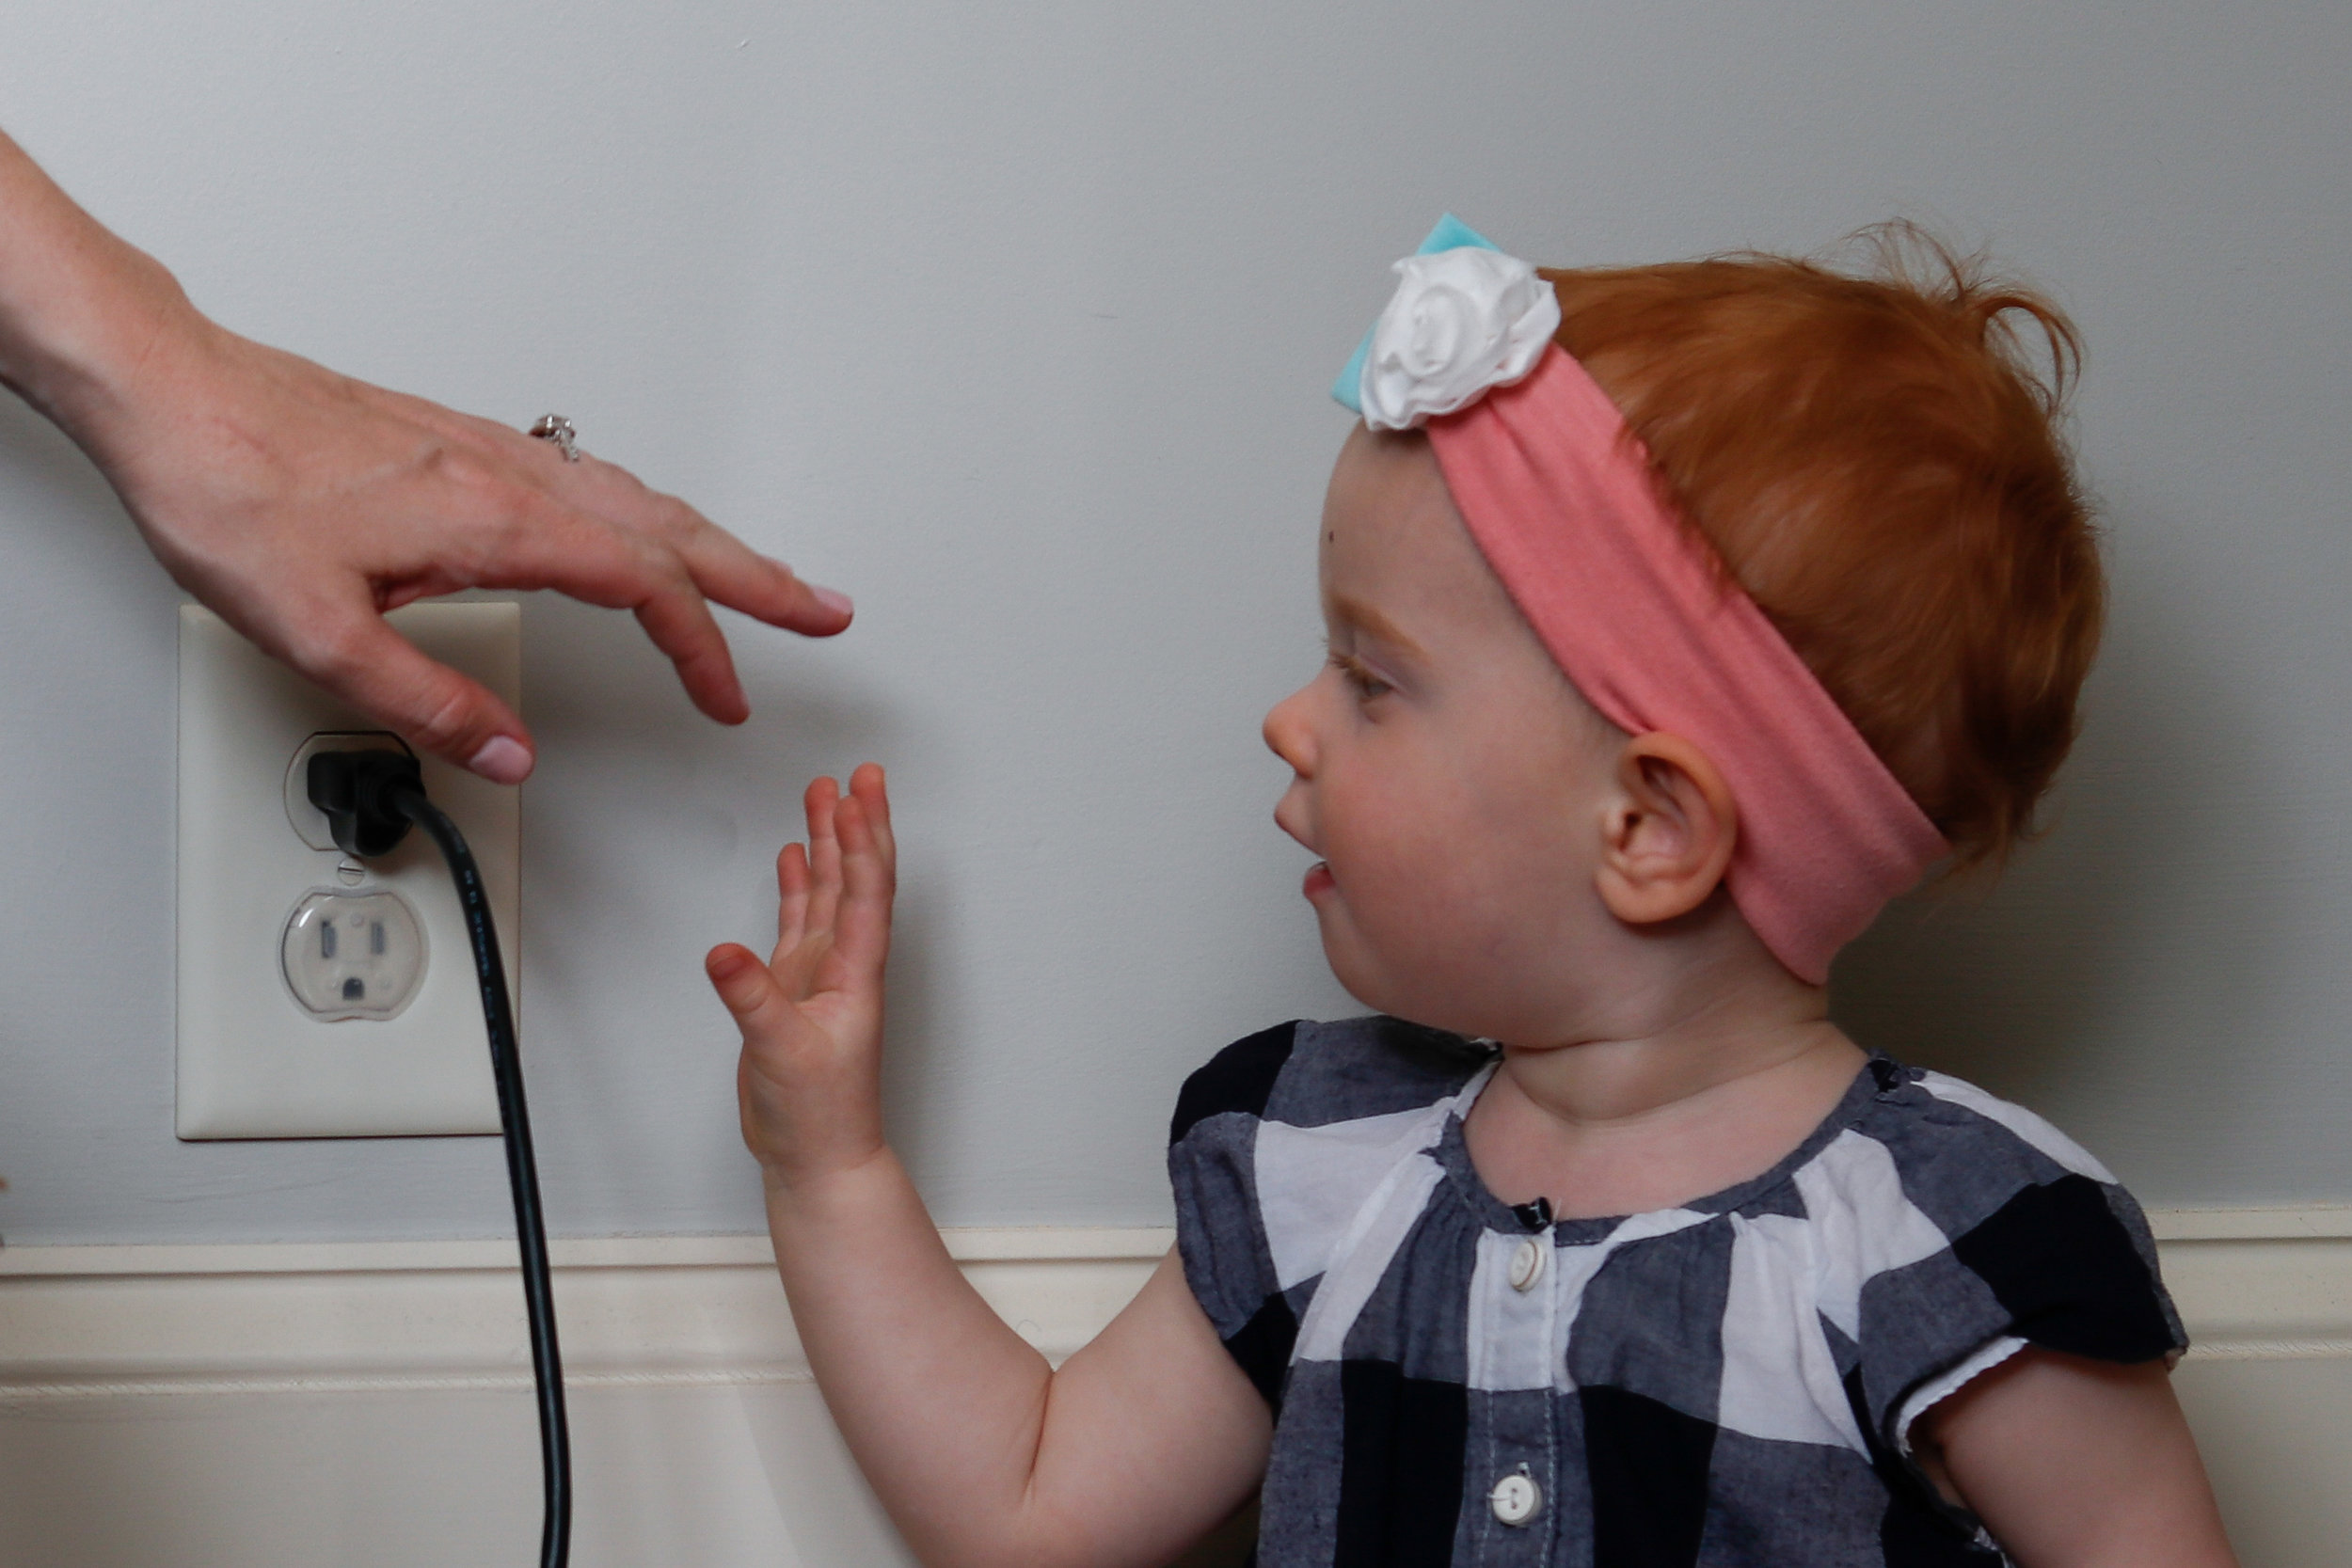 Melanie Zareie stops daughter, Juniper Zareie, 18 months, from touching an electrical outlet in their Athens, Georgia, home on Tuesday, April 3, 2018. Zareie is due to give birth to her second daughter, Olivia, in one week.